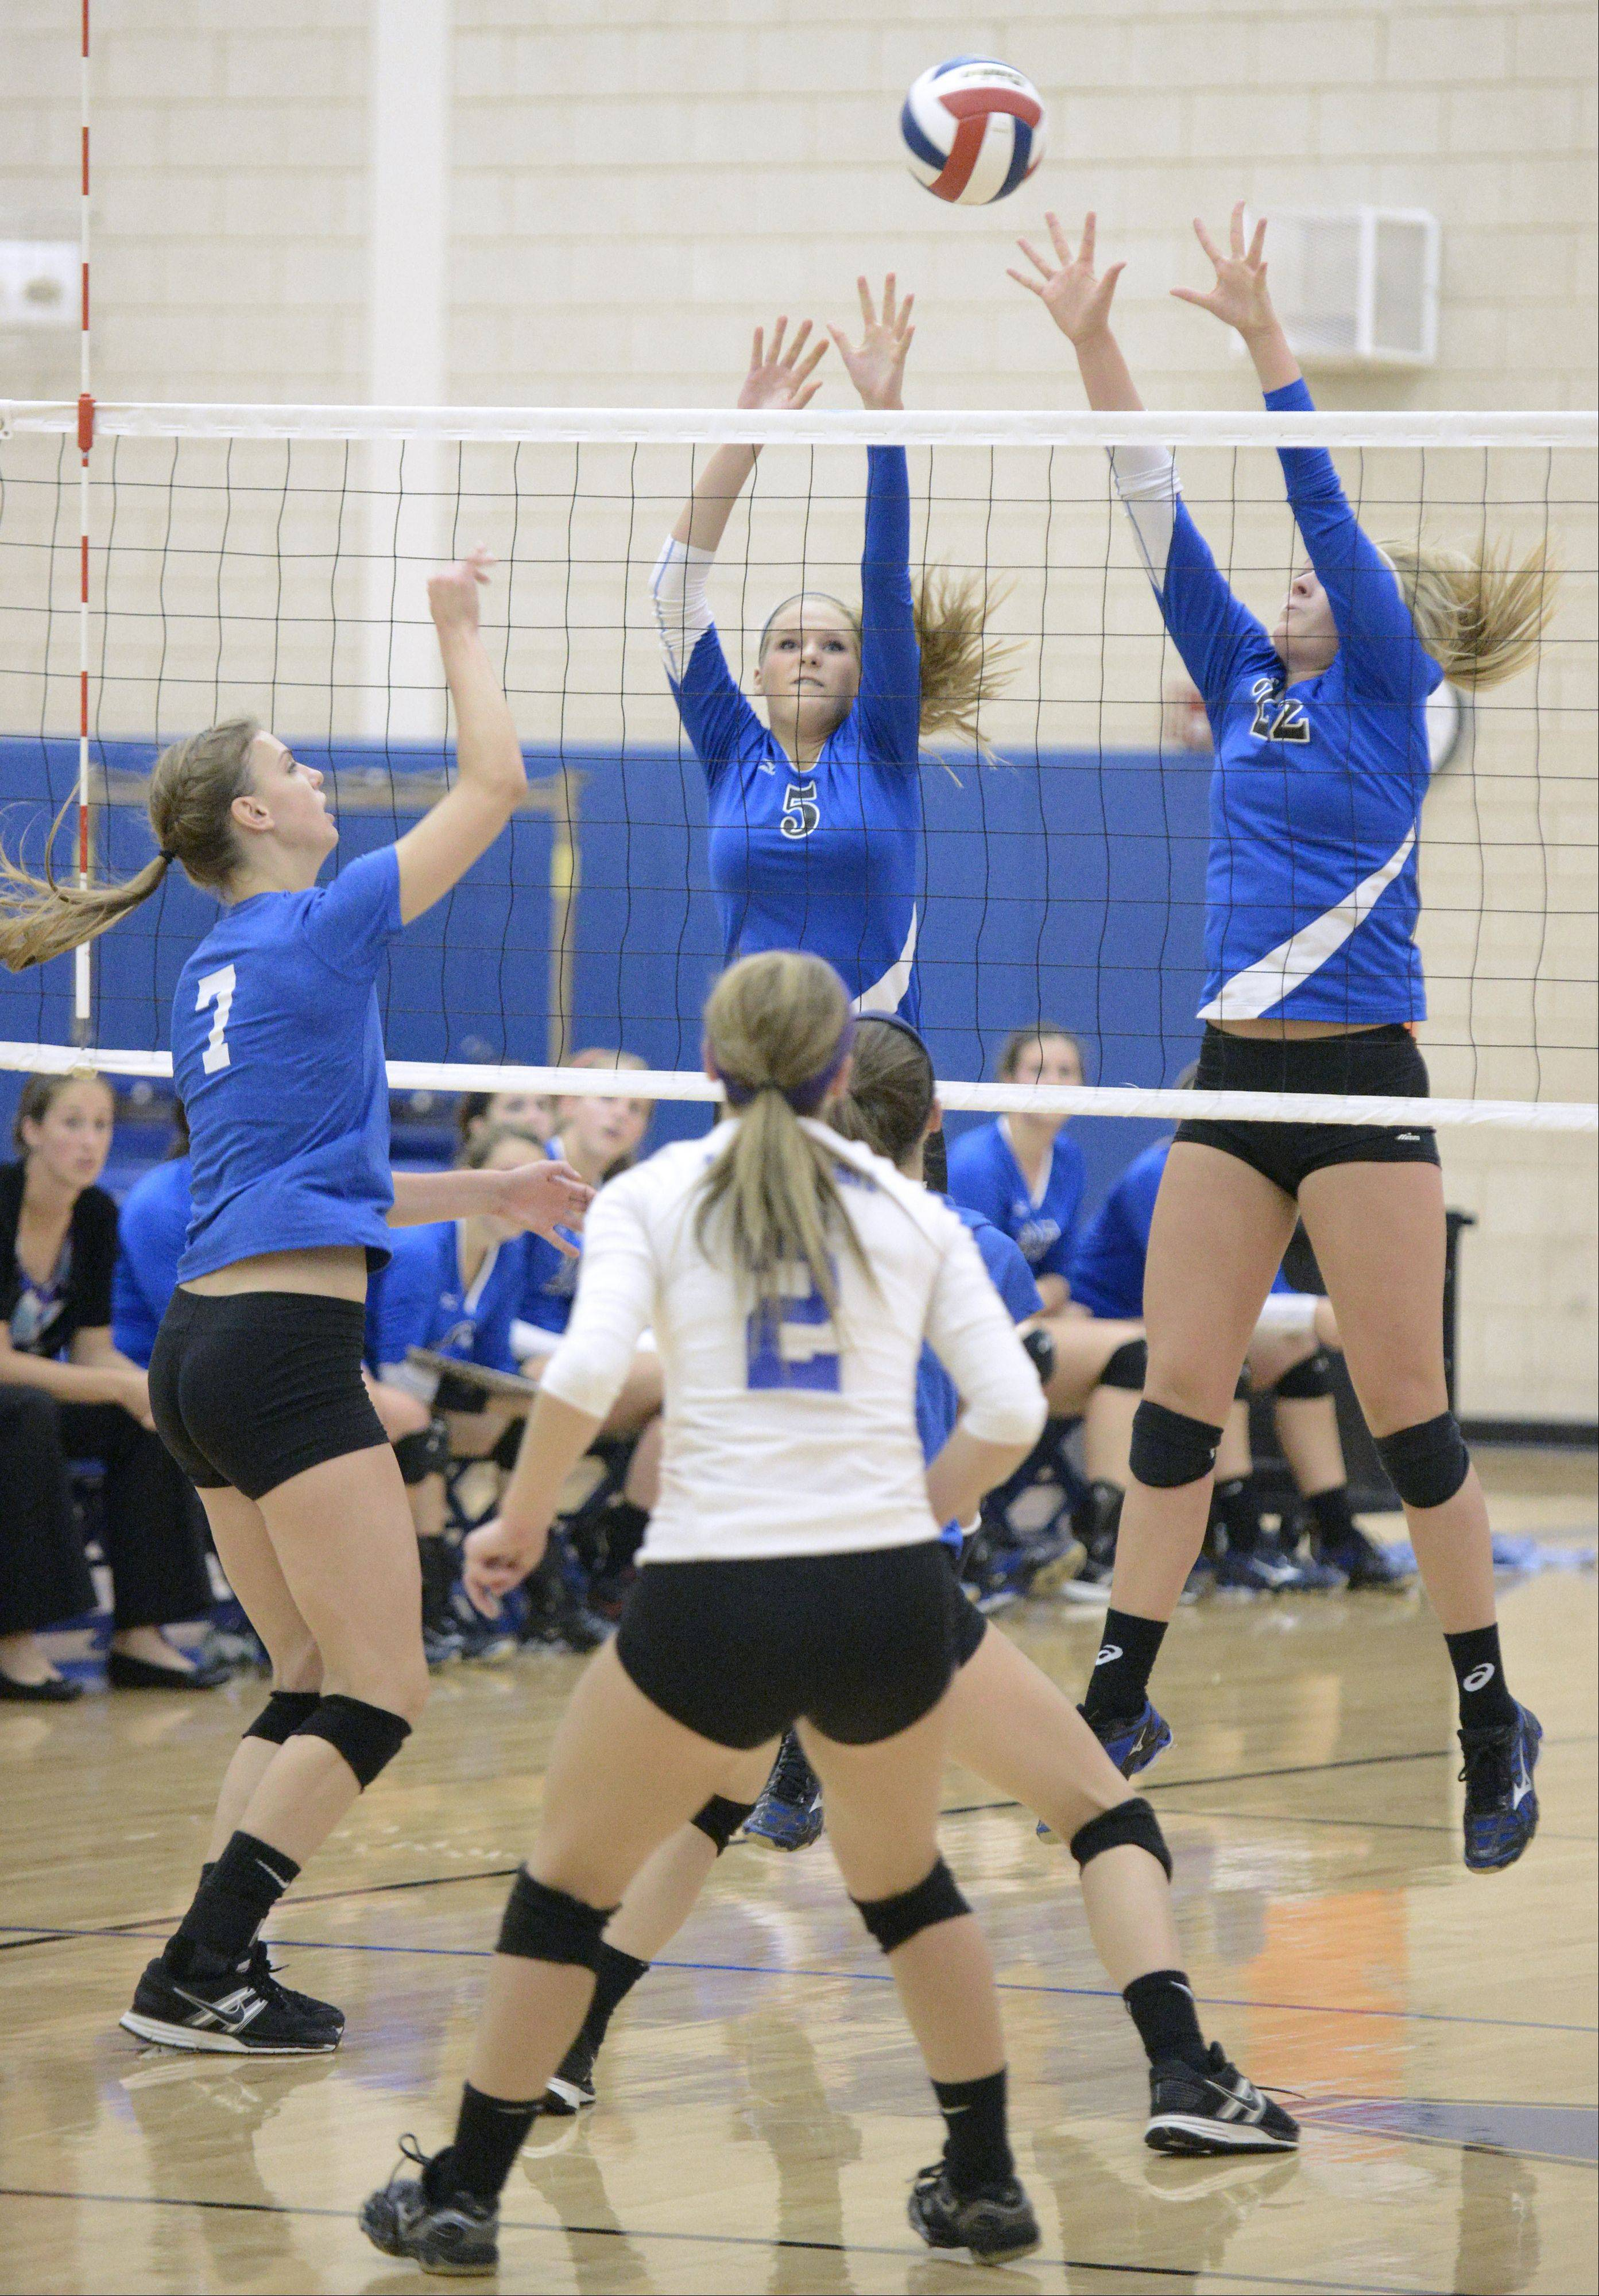 Geneva's Kyley Thompson and Maddie Courter deflect a spike by St. Charles North's Taylor Krage in the first match on Tuesday, September 24.